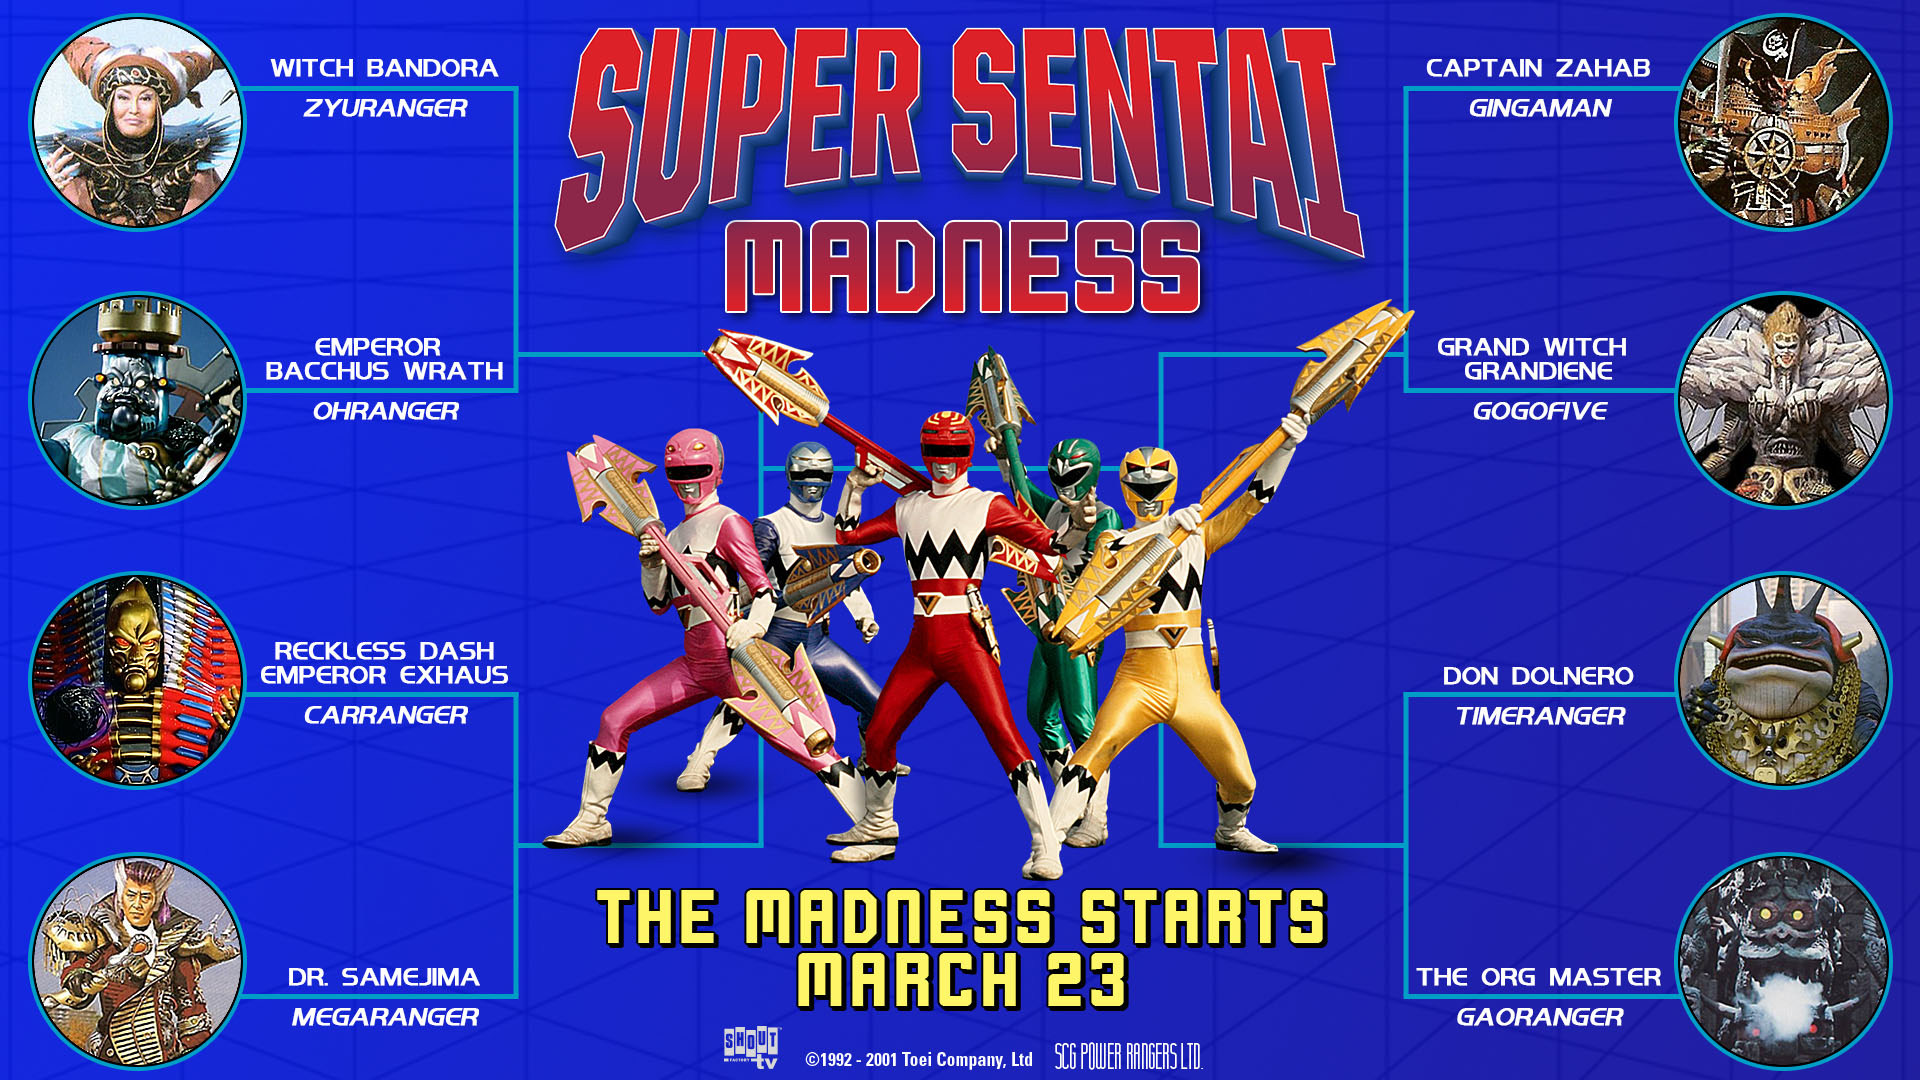 Shout! Factory TV Presents SUPER SENTAI MADNESS Three-Weekend Villain Tournament Livestream of Sentai Series